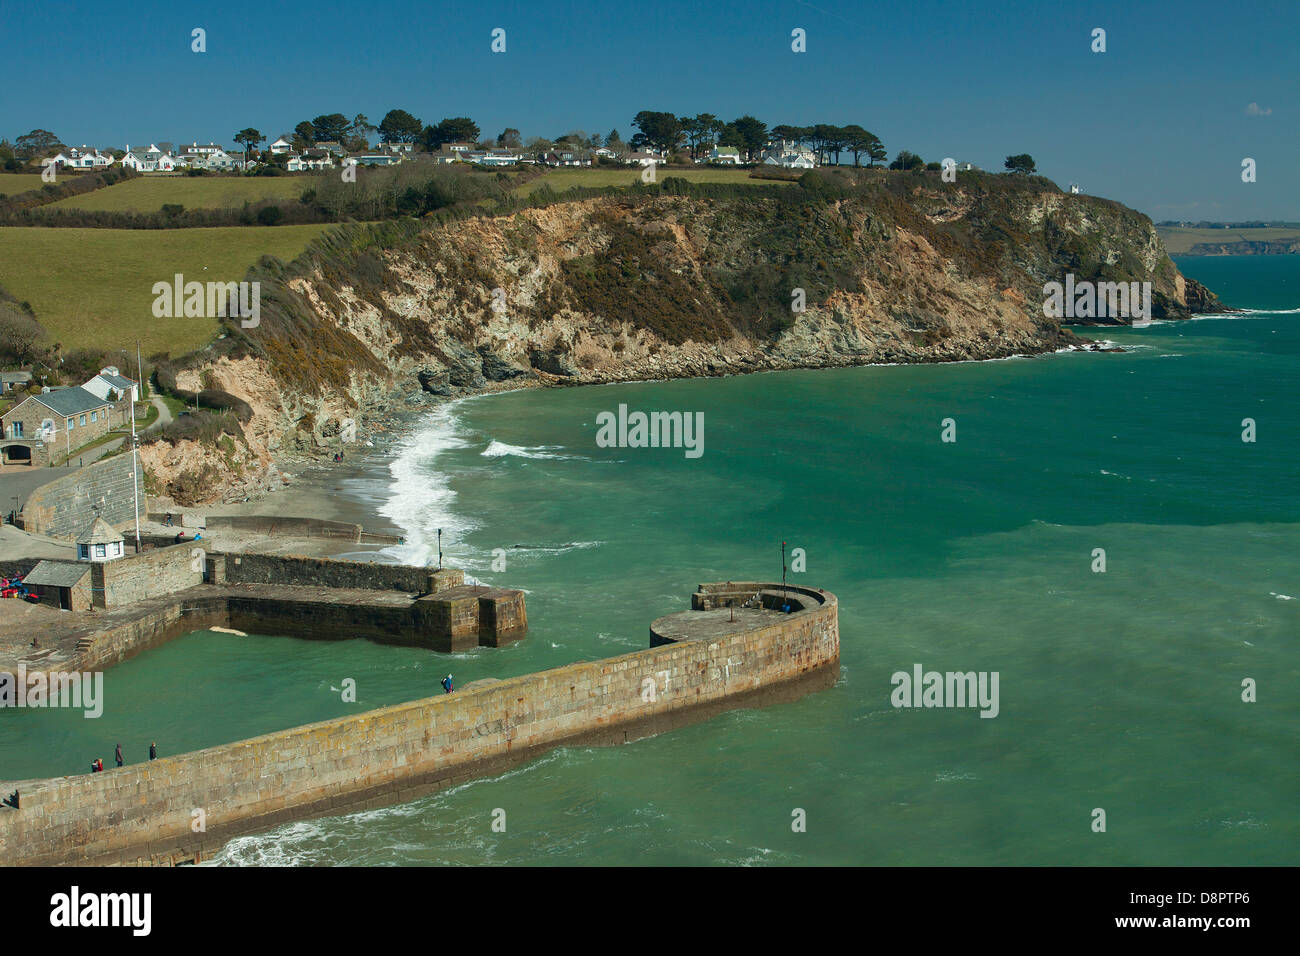 Charlestown Harbour, Charlestown, Conrwall - Stock Image